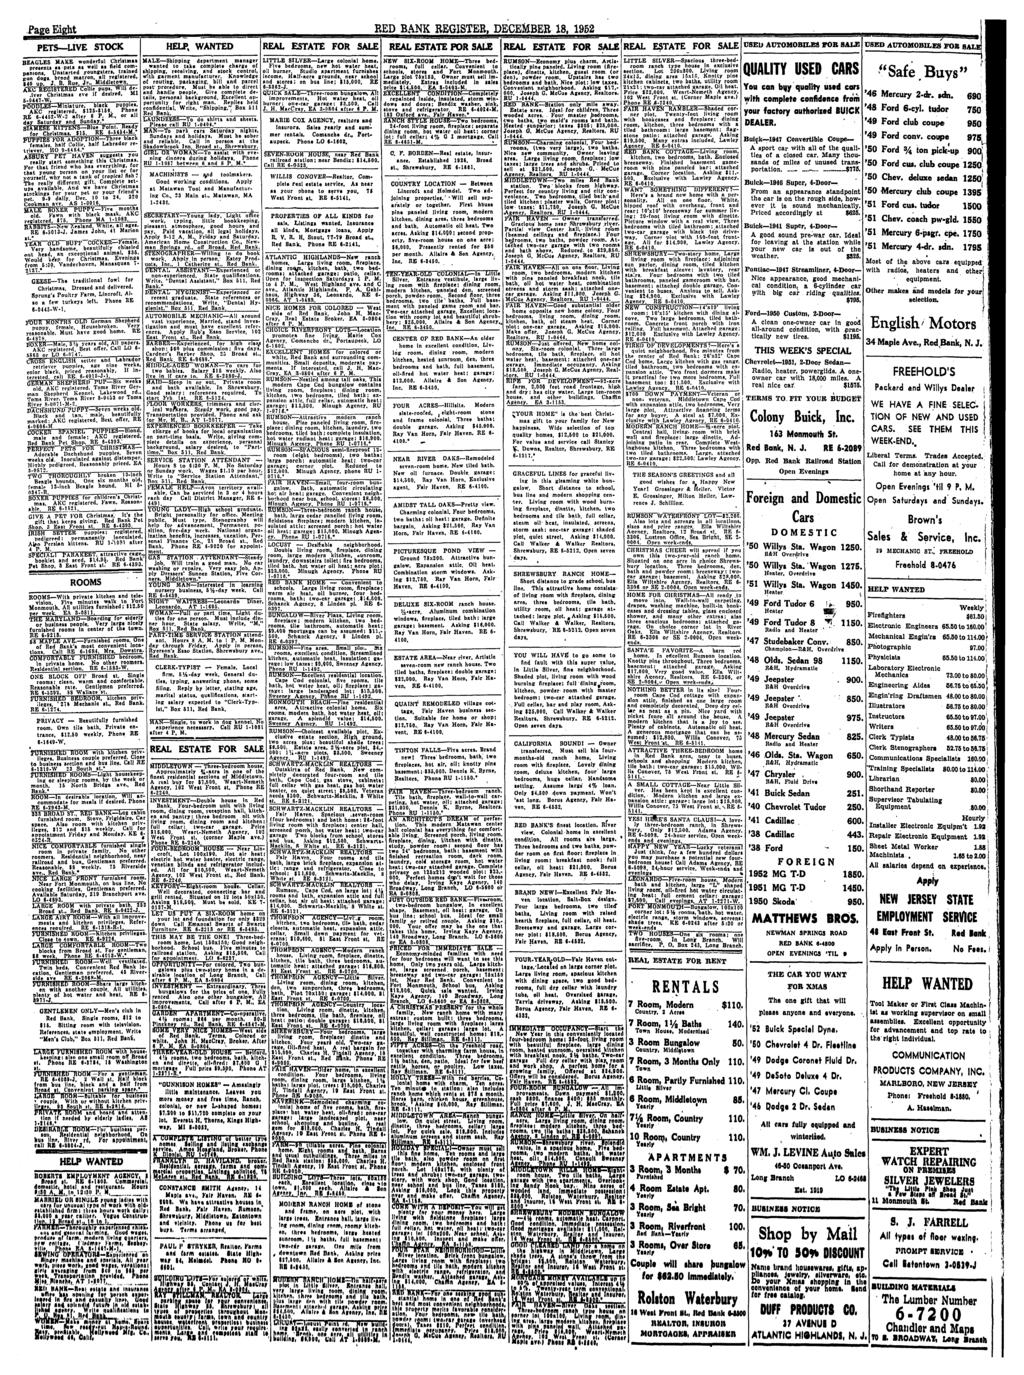 red bank register this paper will be issued pdf Kaiser Henry J